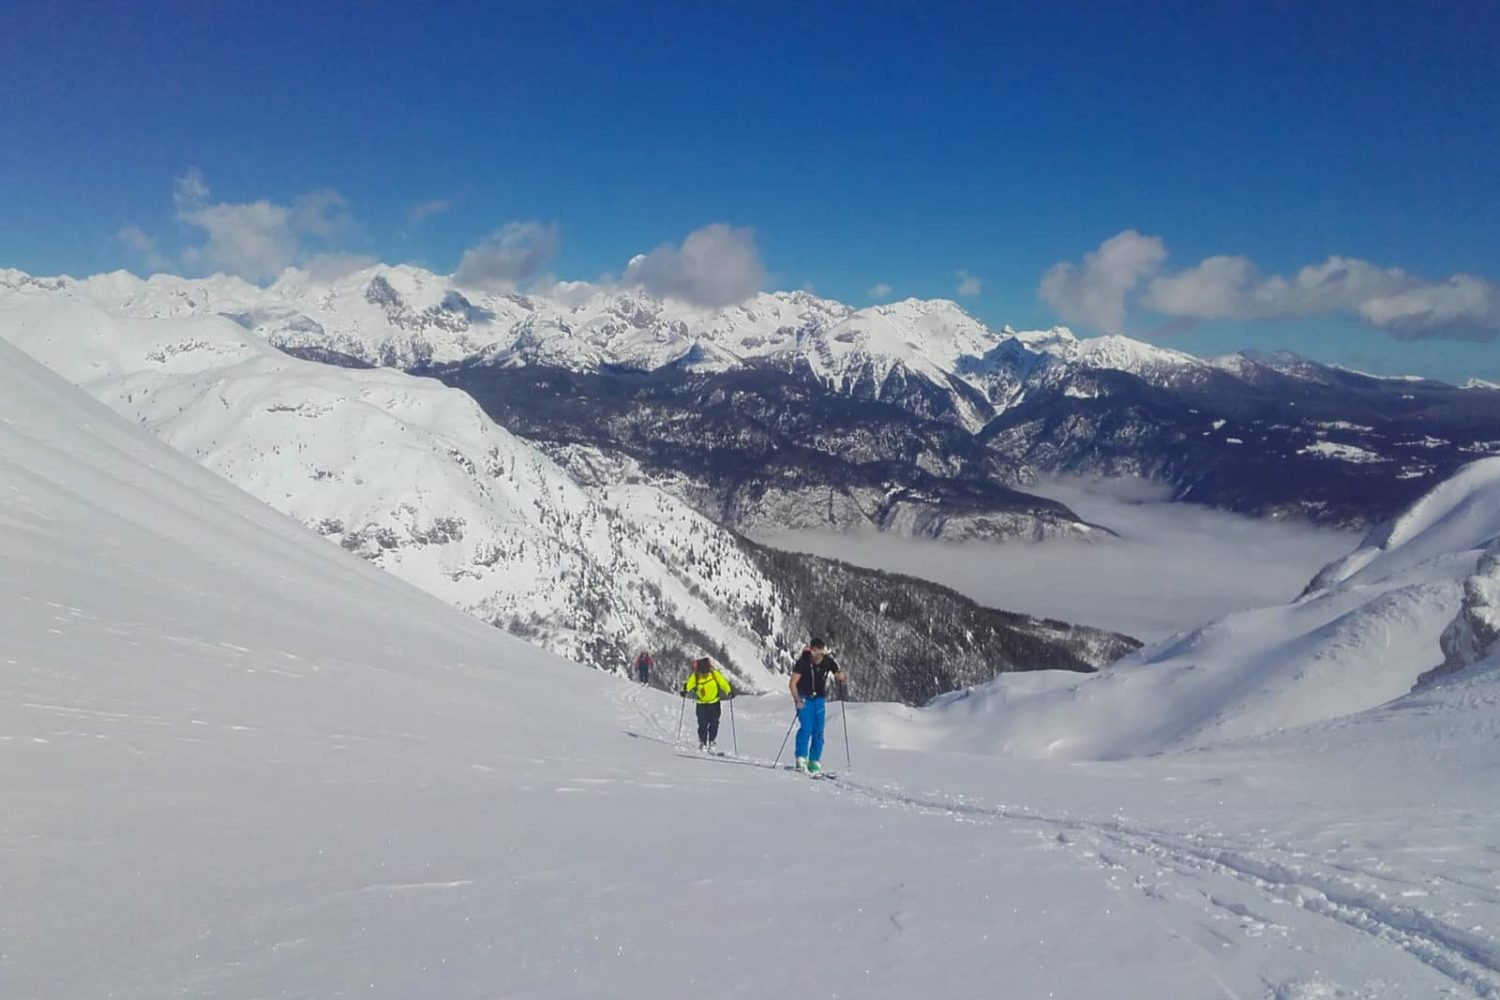 Ski touring in Slovenian Alps